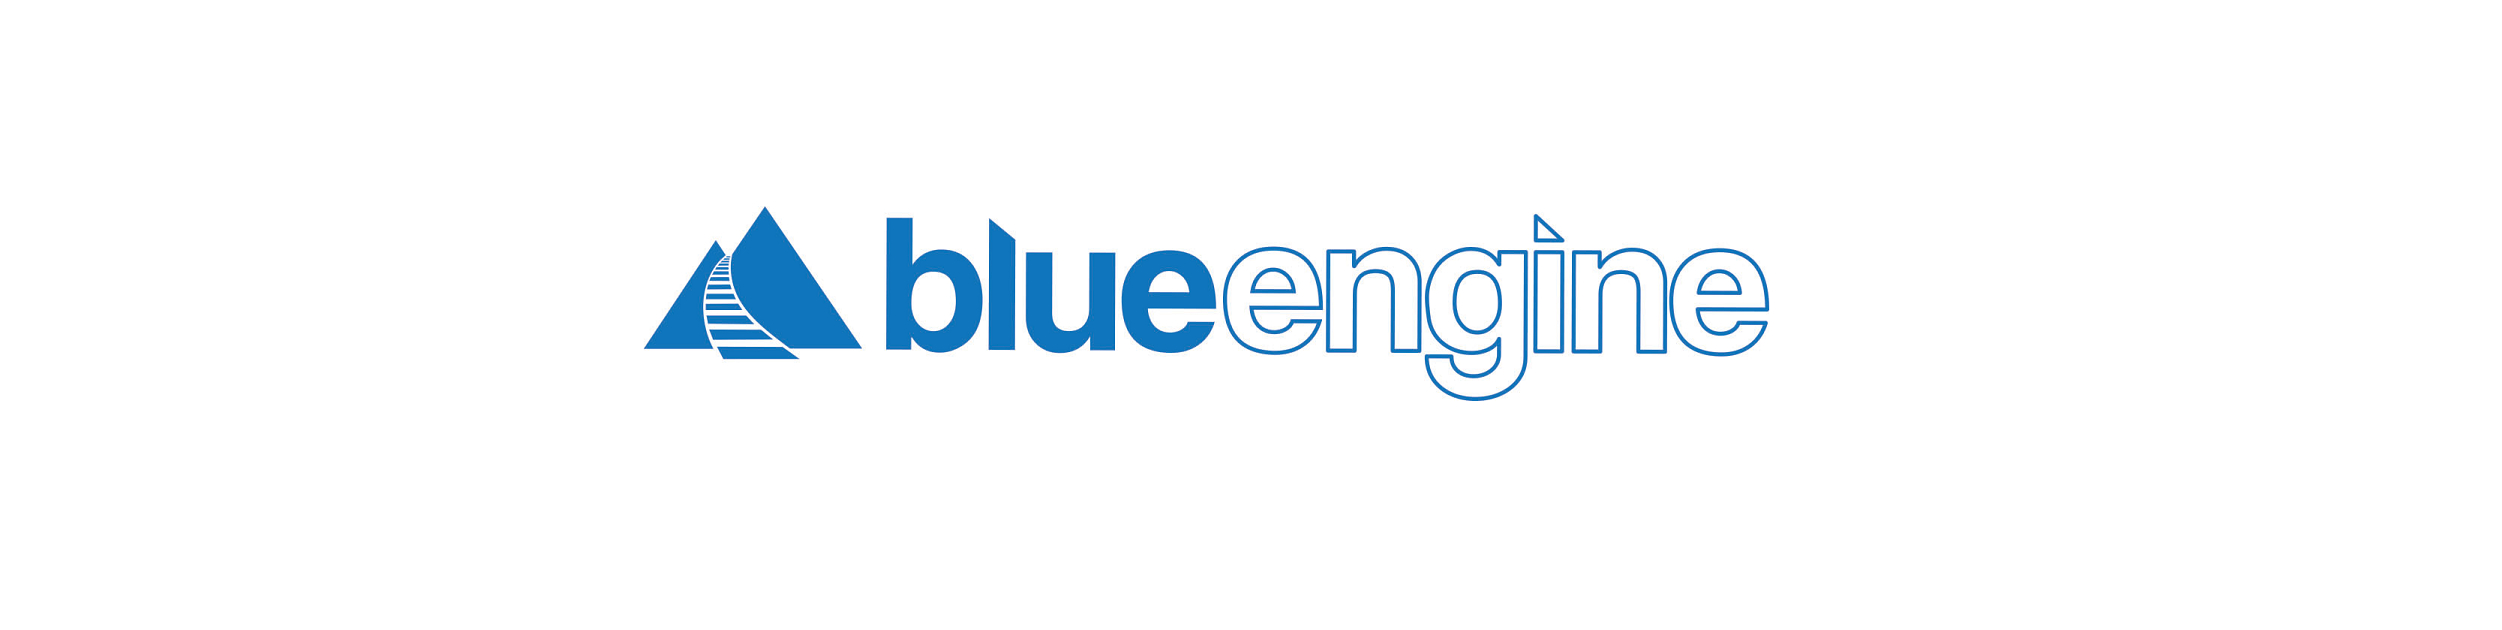 Blue Engine - 2019 - 2020 Blue Engine Teaching Apprentice with Nus 2019-2020 Term Start Date